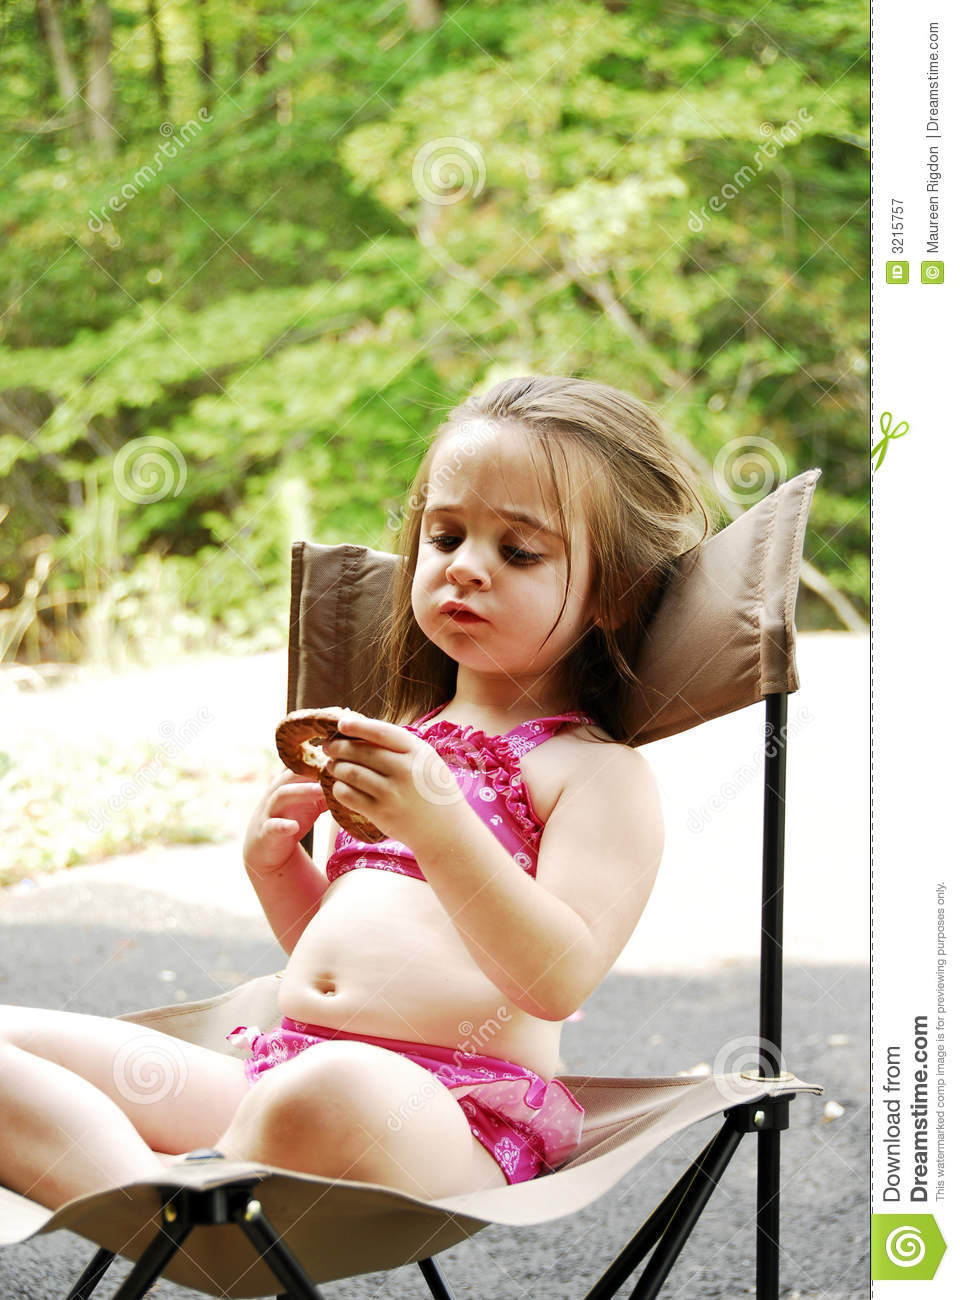 Pretzel Girl Royalty Free Stock Photography - Image: 3215757